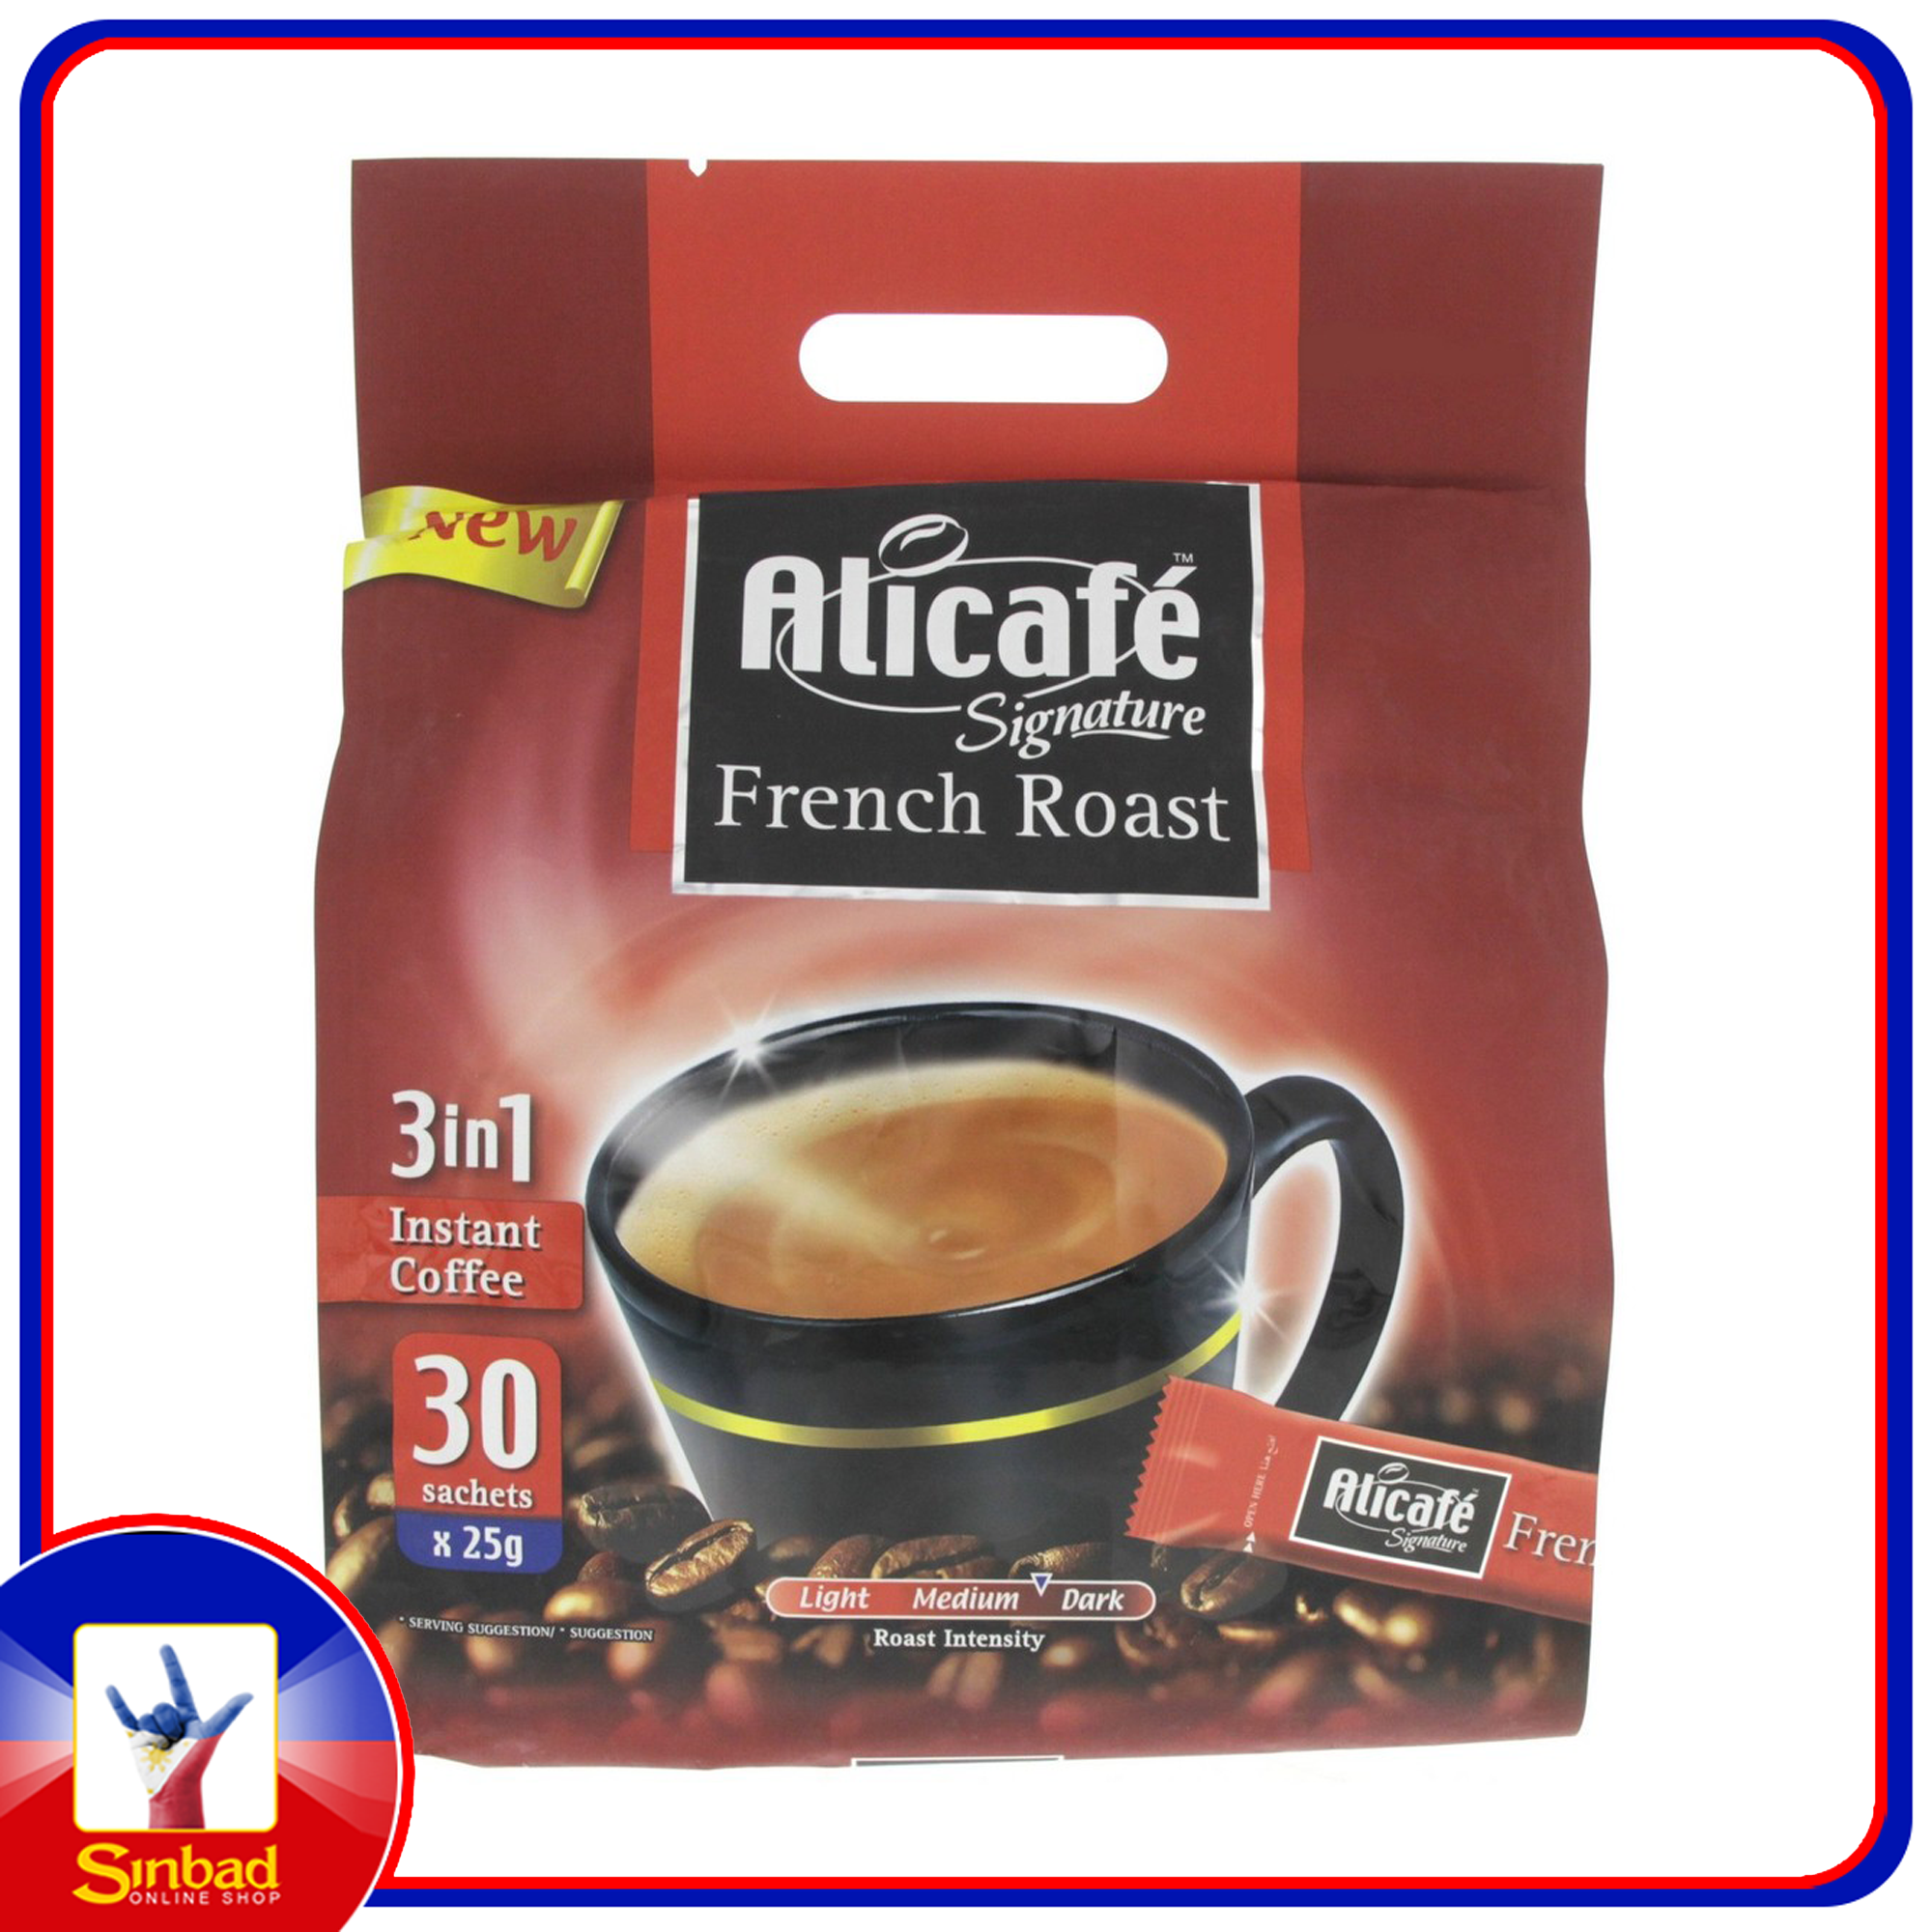 Alicafe Signature 3 in 1 French Roast Coffee 30 x 25g